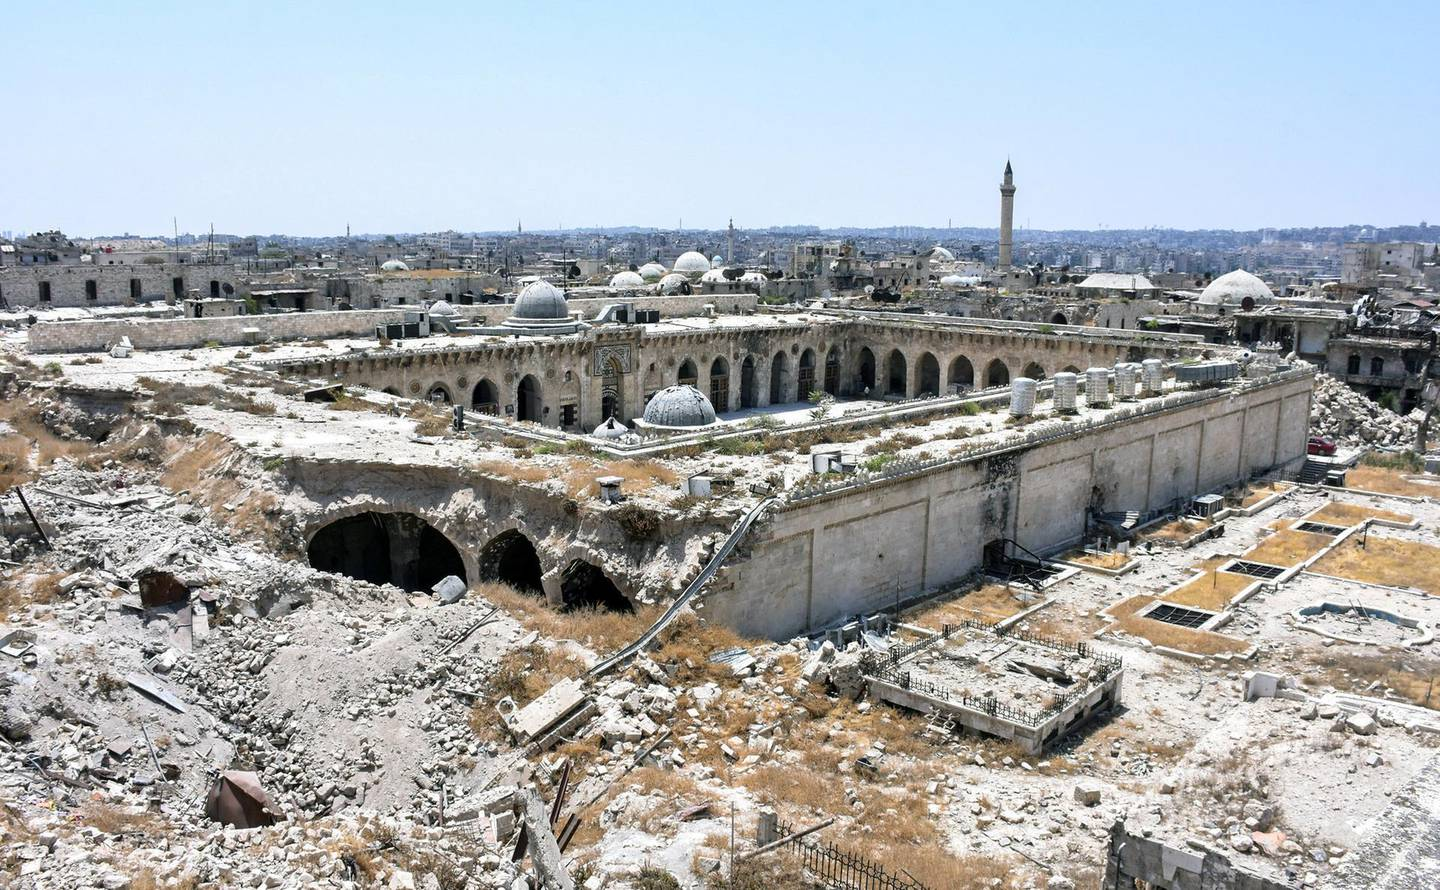 A picture taken on July 22, 2017 in the northern Syrian city of Aleppo, which was recaptured by government forces in December 2016, shows a general view of the destruction at the site of the ancient Great Umayyad Mosque in the old city. / AFP PHOTO / George OURFALIAN